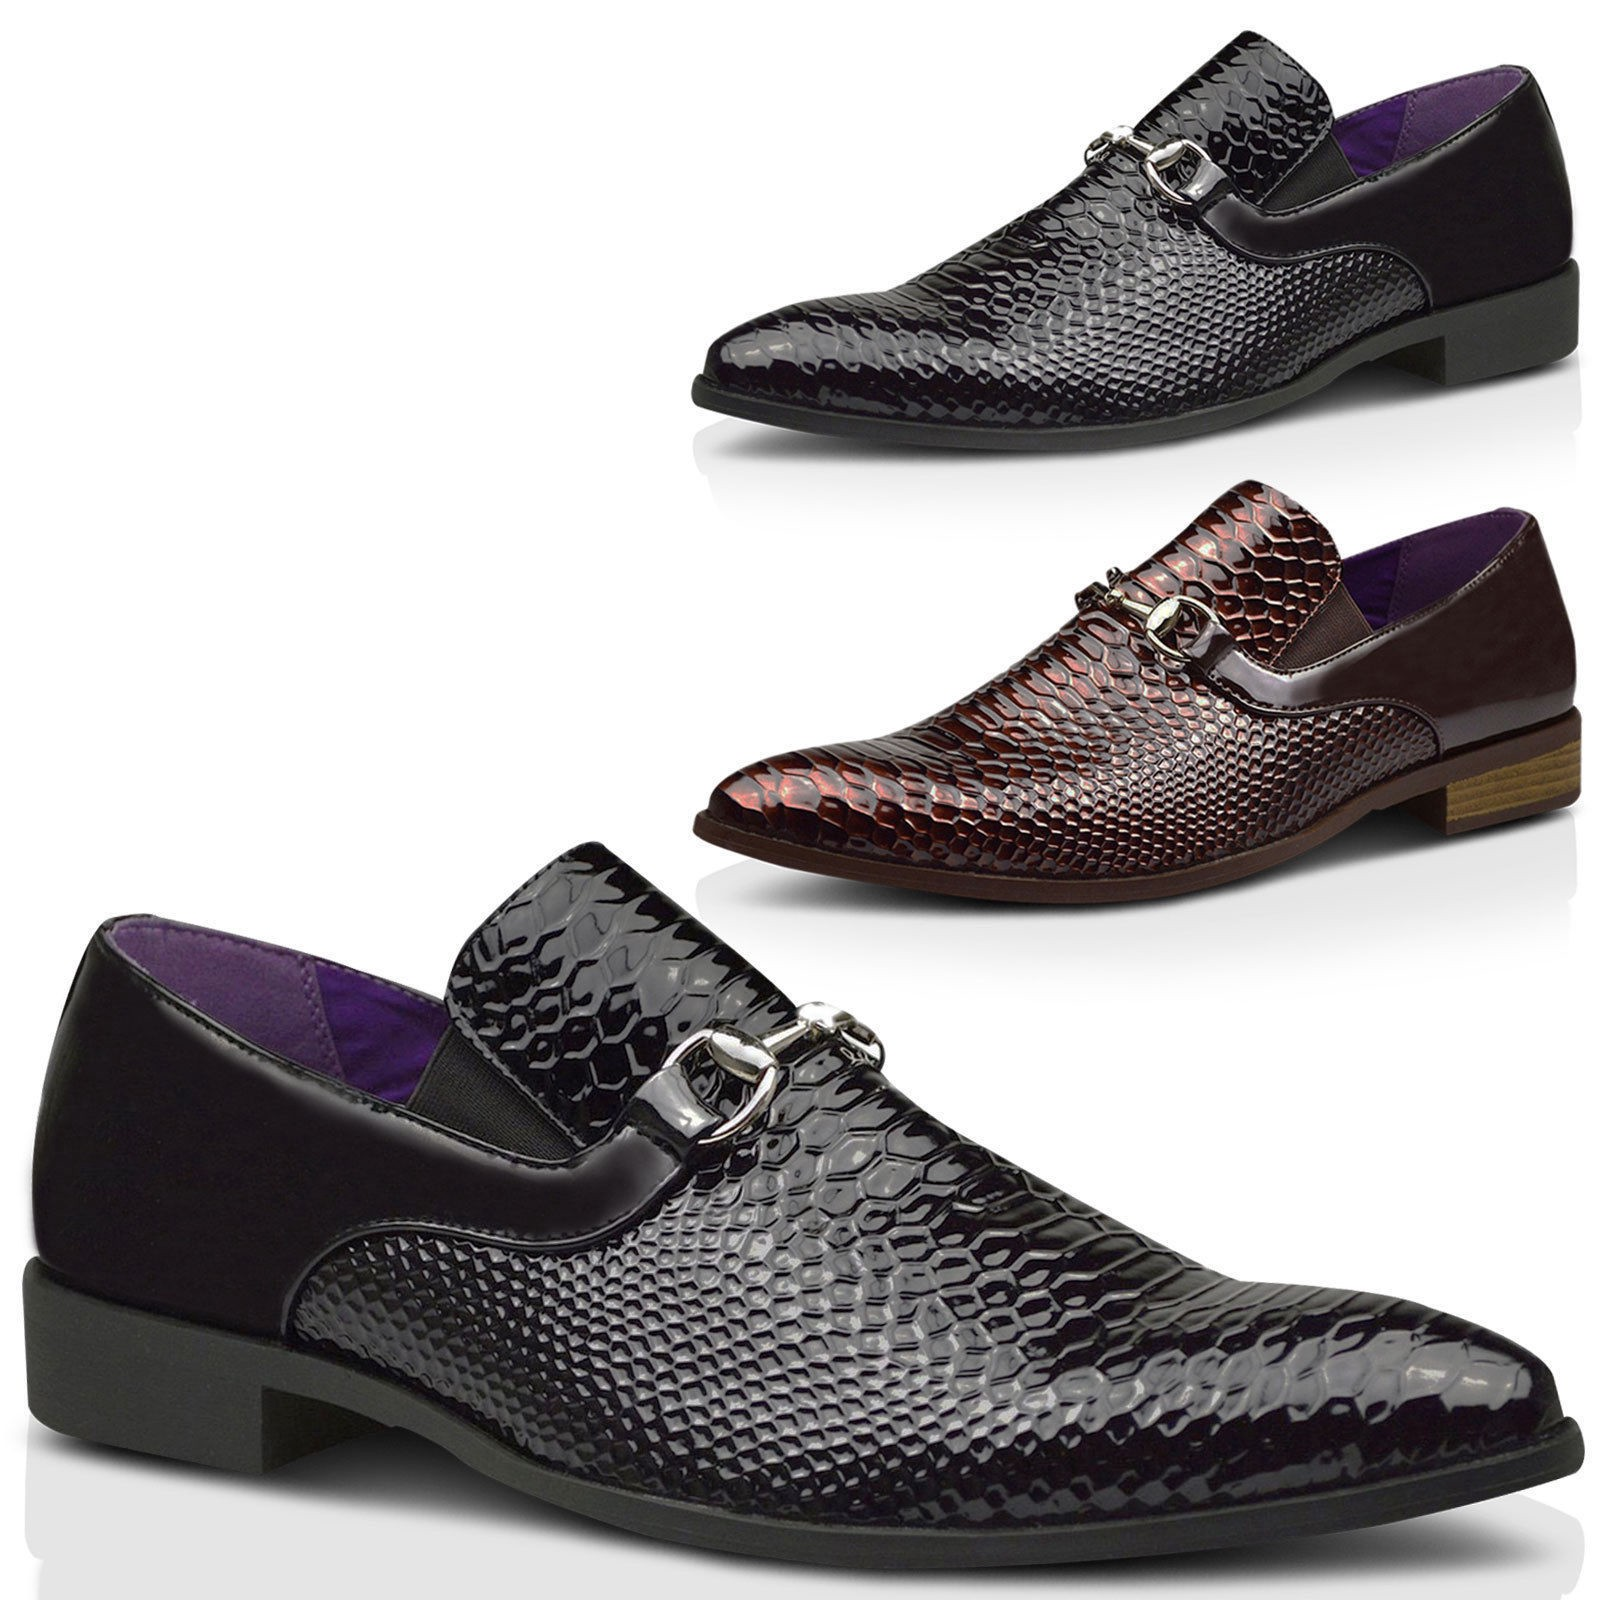 Mens Patent Wedding Shiny Slip On Party Dress Formal Shoes